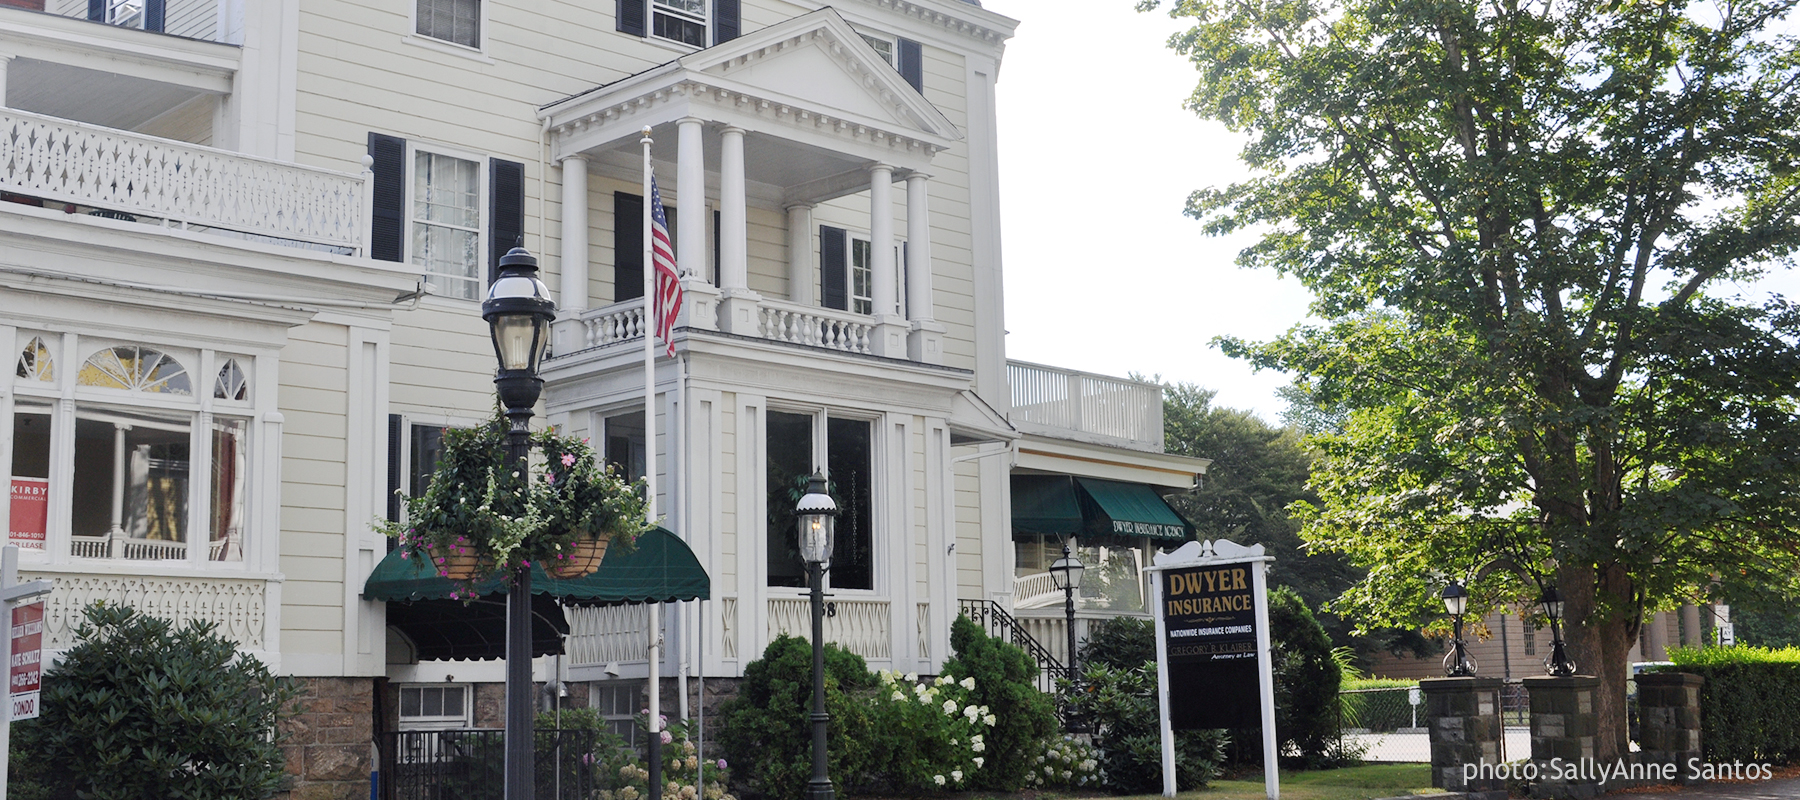 D.F. Dwyer Insurance Agency is located at 38 Bellevue Avenue, Newport, Rhode Island 02840